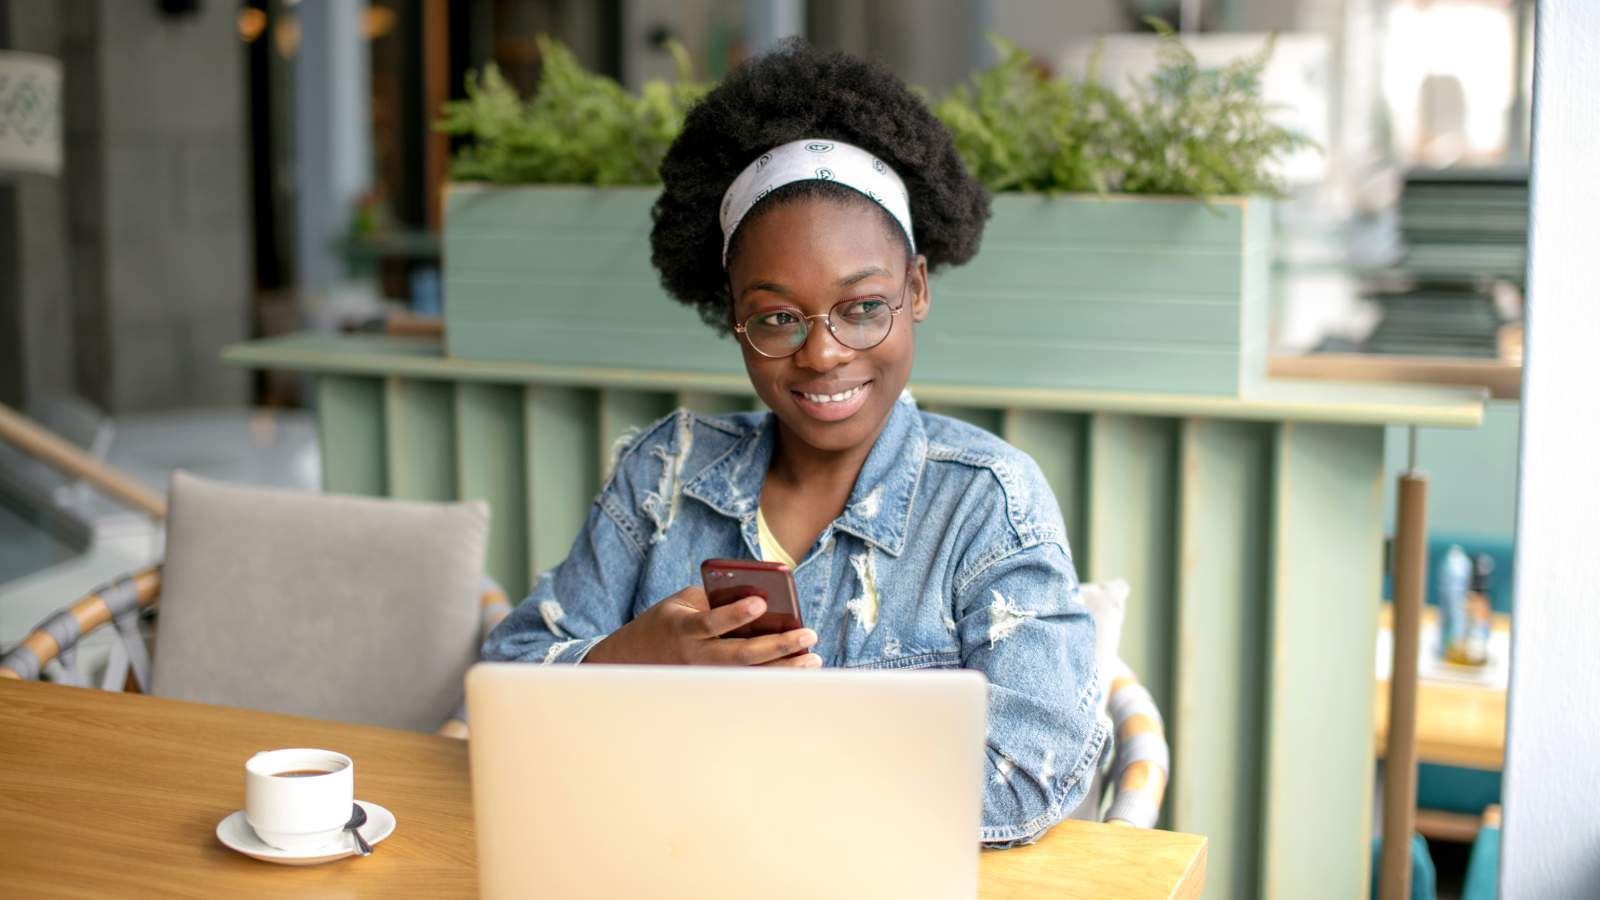 A young girl smiling and sitting by a coffee table with her phone and laptop